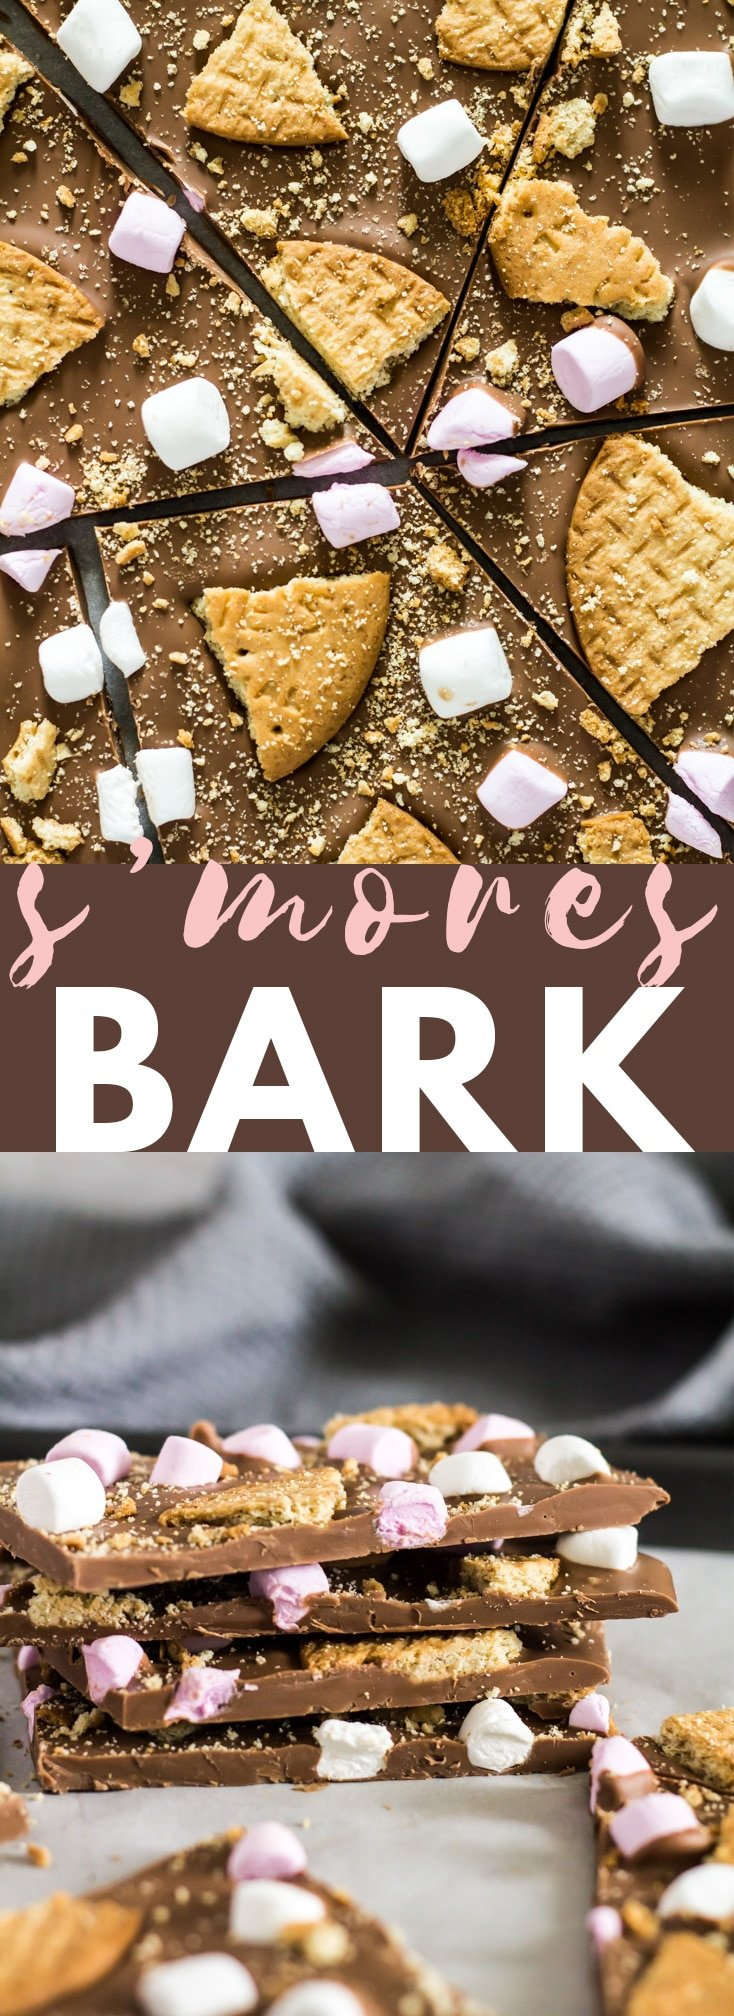 S'mores Chocolate Bark - A deliciously thick and creamy layer of milk chocolate that is generously topped with broken biscuits, and mini marshmallows!